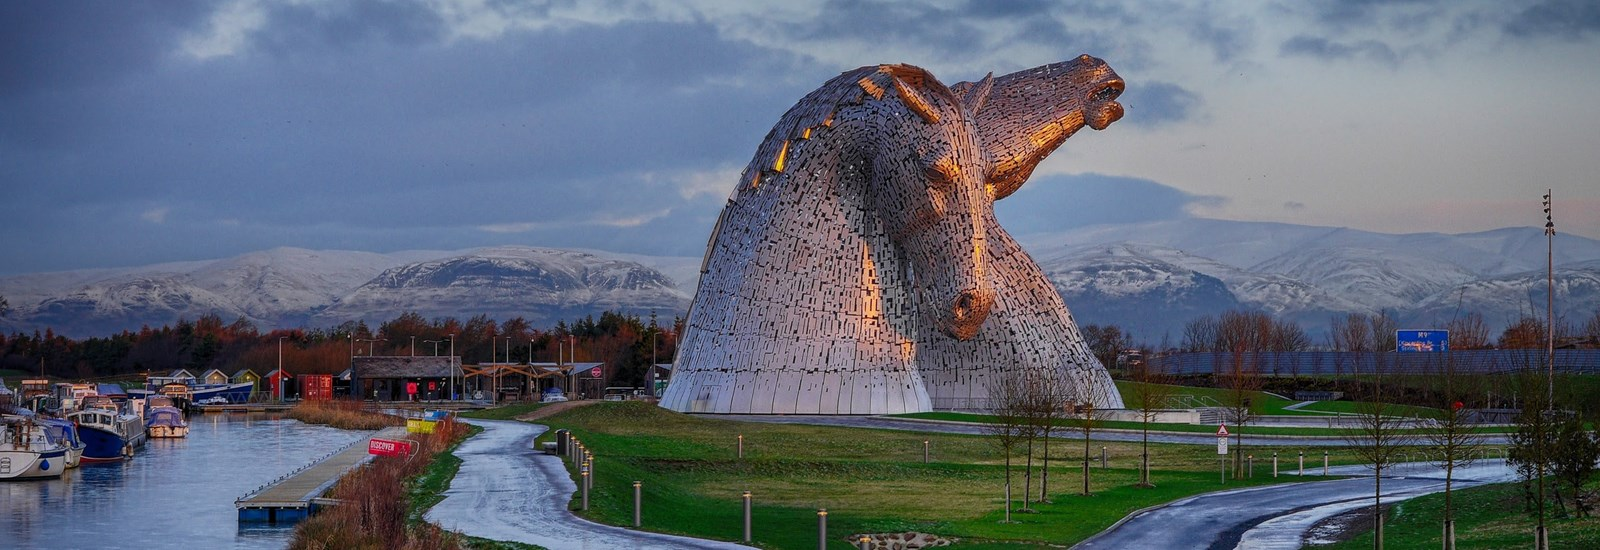 The Kelpies - Winter